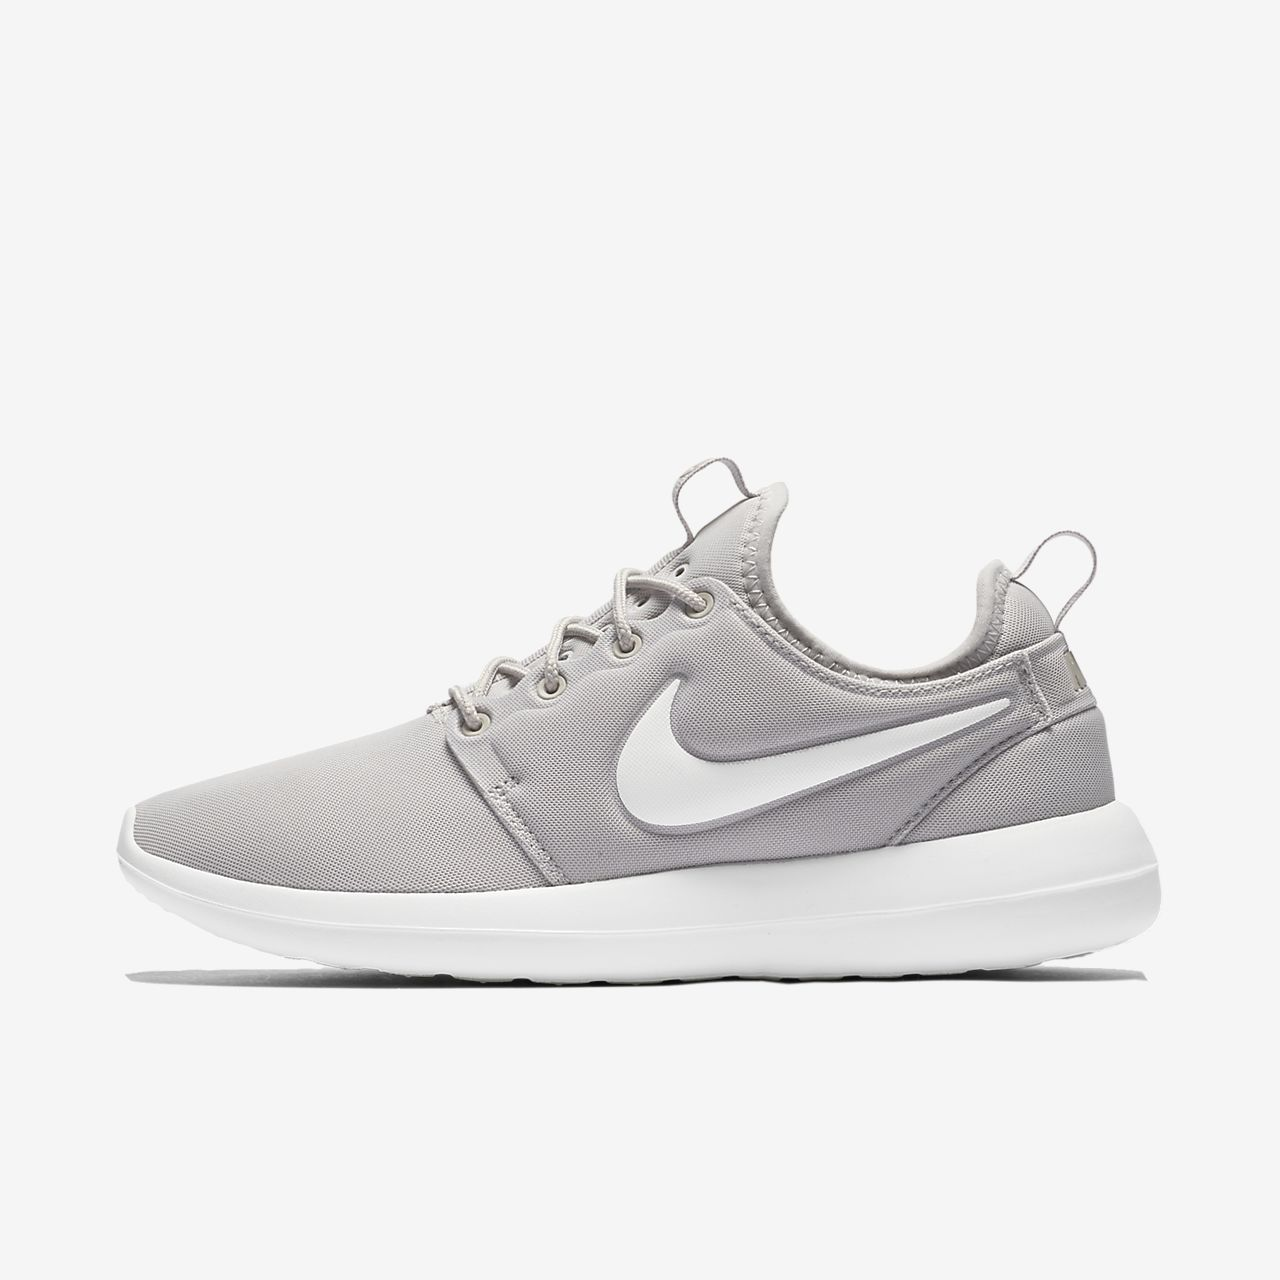 ... Nike Roshe Two Women's Shoe